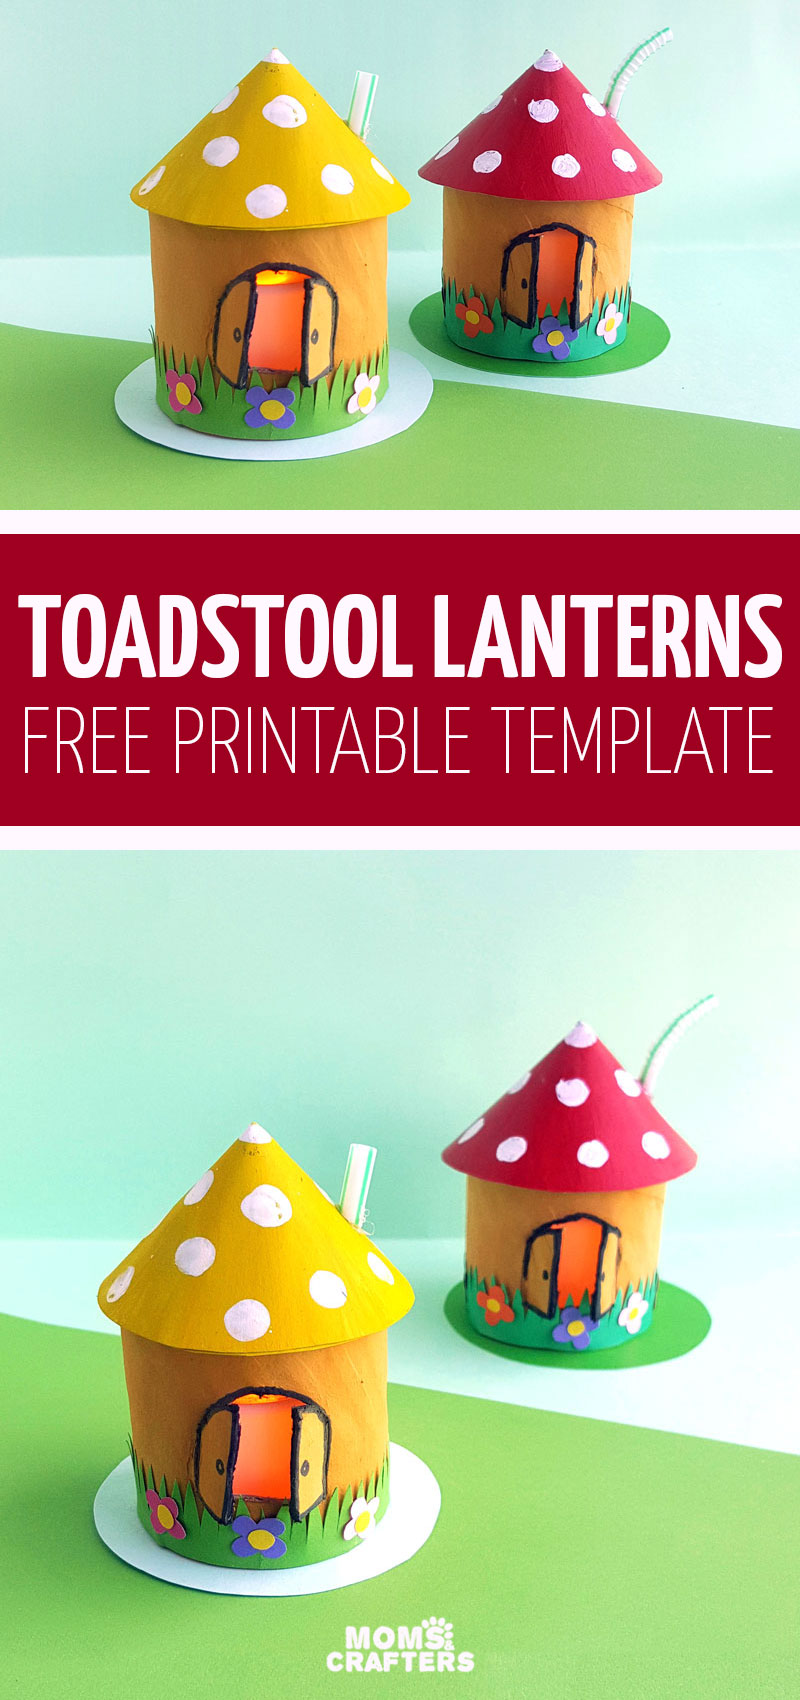 Click to learn how to make toadstool house lanterns from toilet paper rolls - a fun paper craft for kids made using cardboard tubes! This is so whimsical and a fun DIY fantasy toy or fairy themed activity